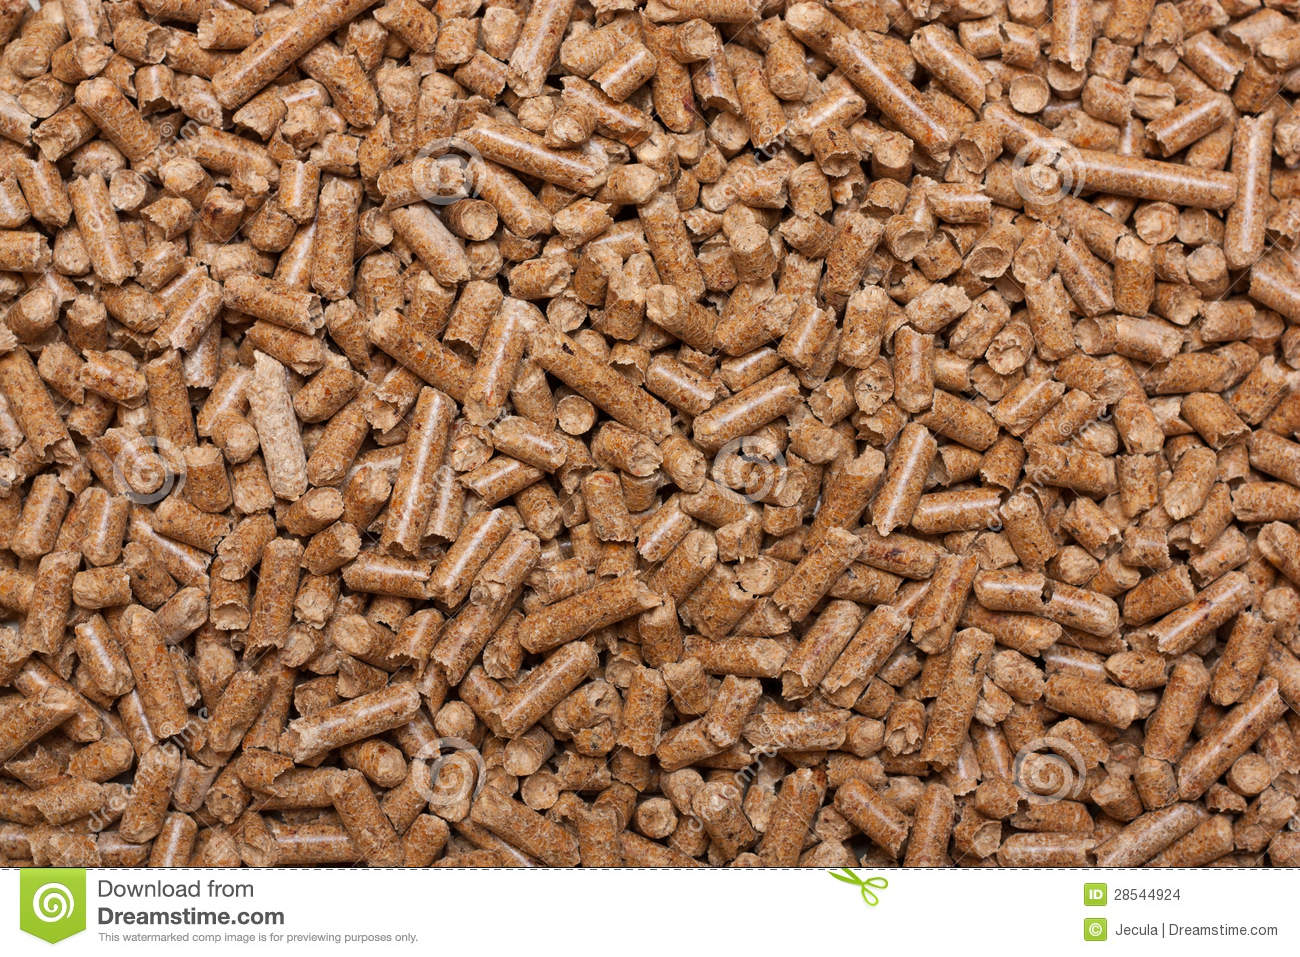 Pressed sawdust stock photo  Image of recycling, granulated